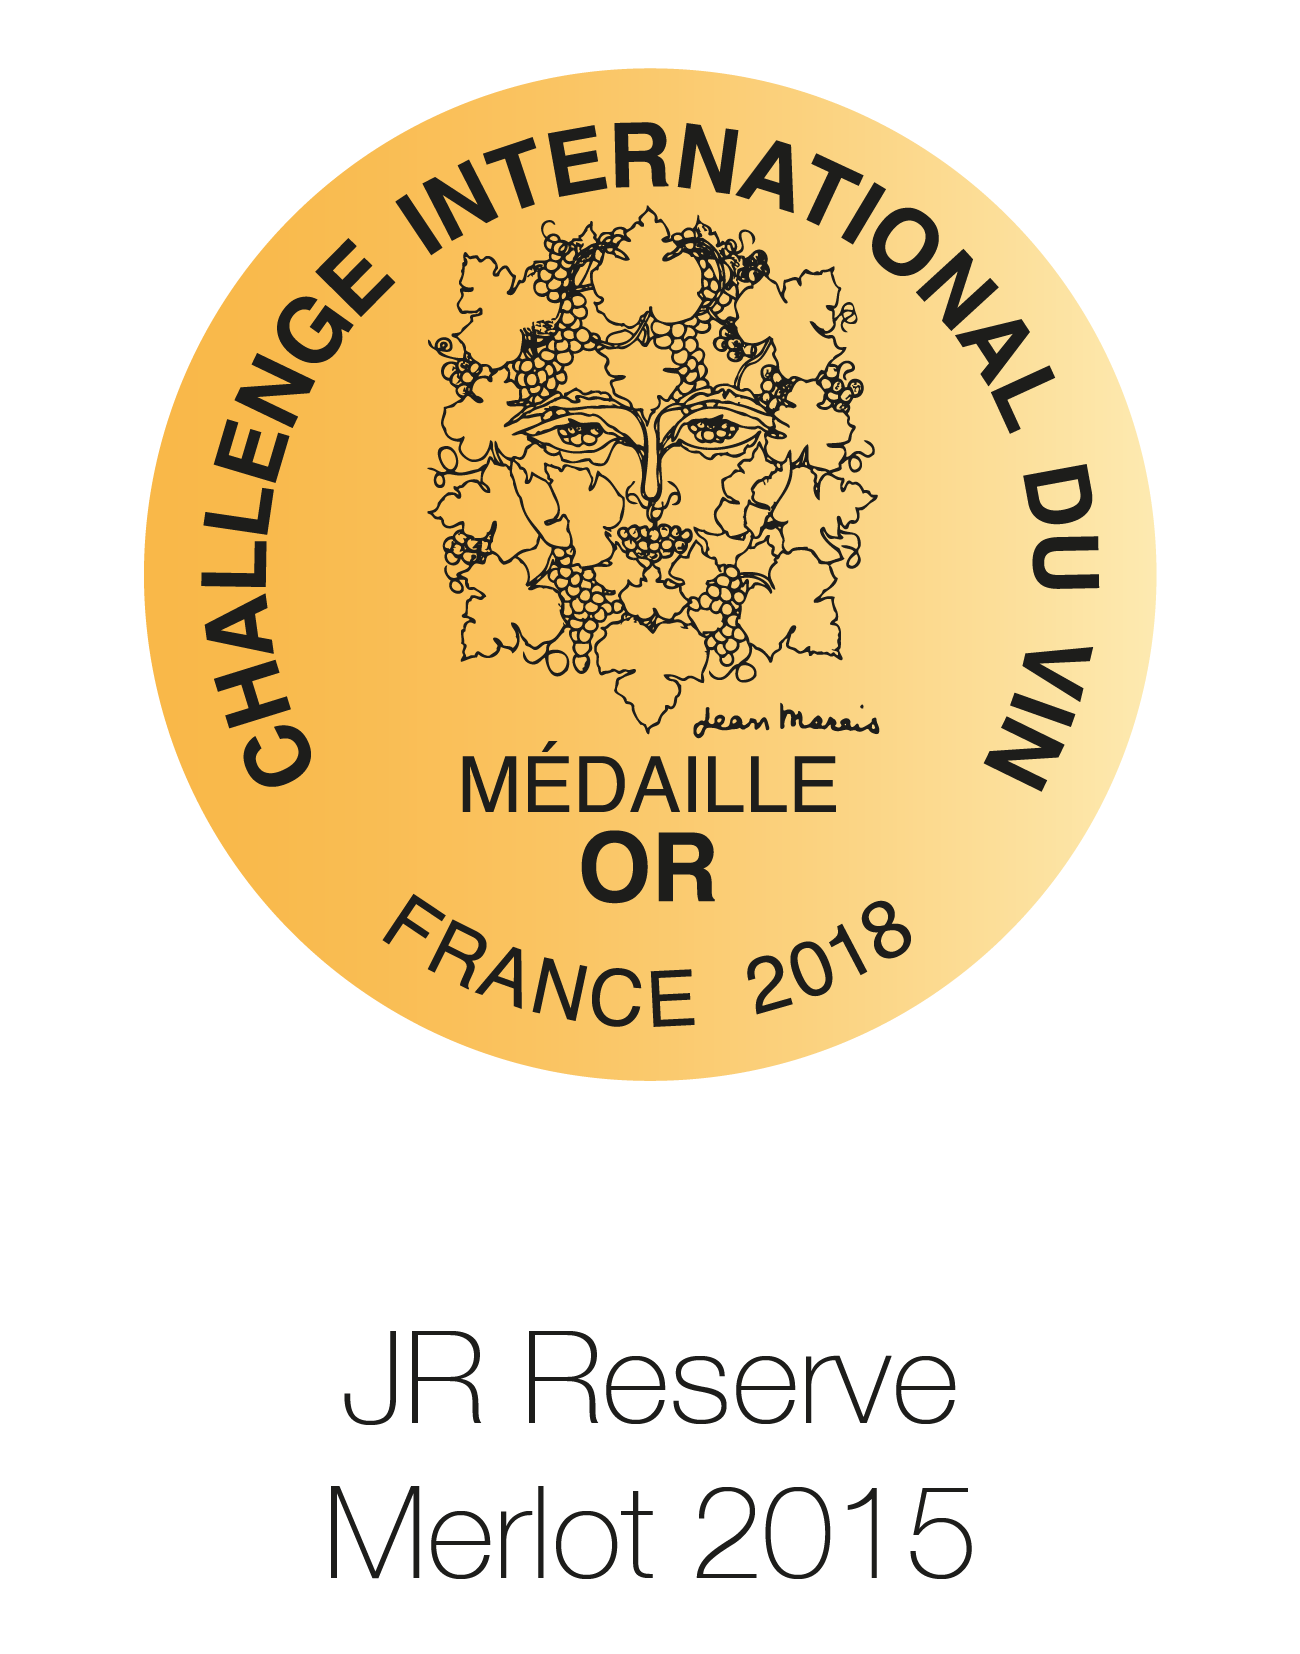 JR Reserve - Merlot 2015 - Challenge international Du Vin 2018